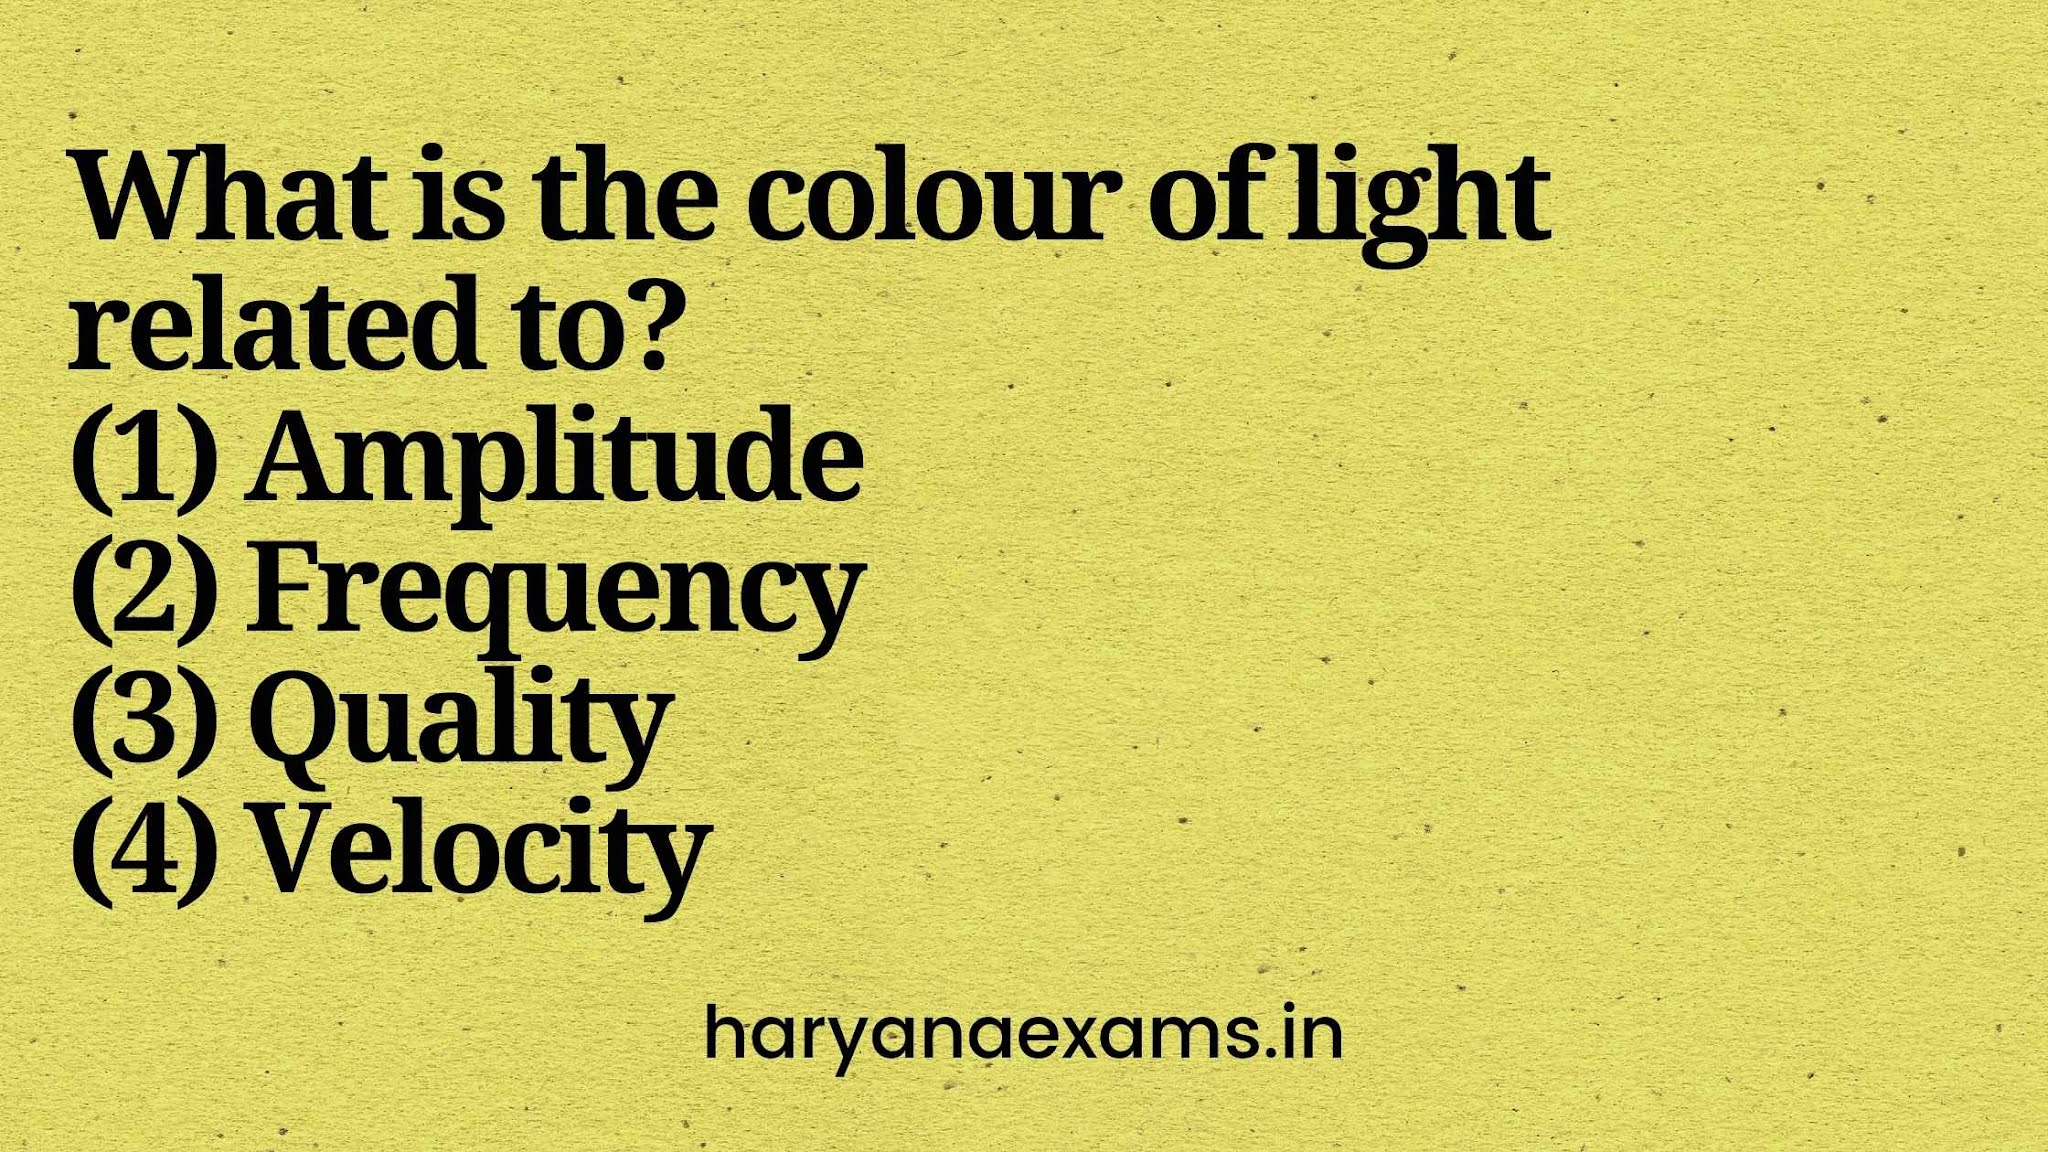 What is the colour of light related to?   (1) Amplitude   (2) Frequency   (3) Quality   (4) Velocity